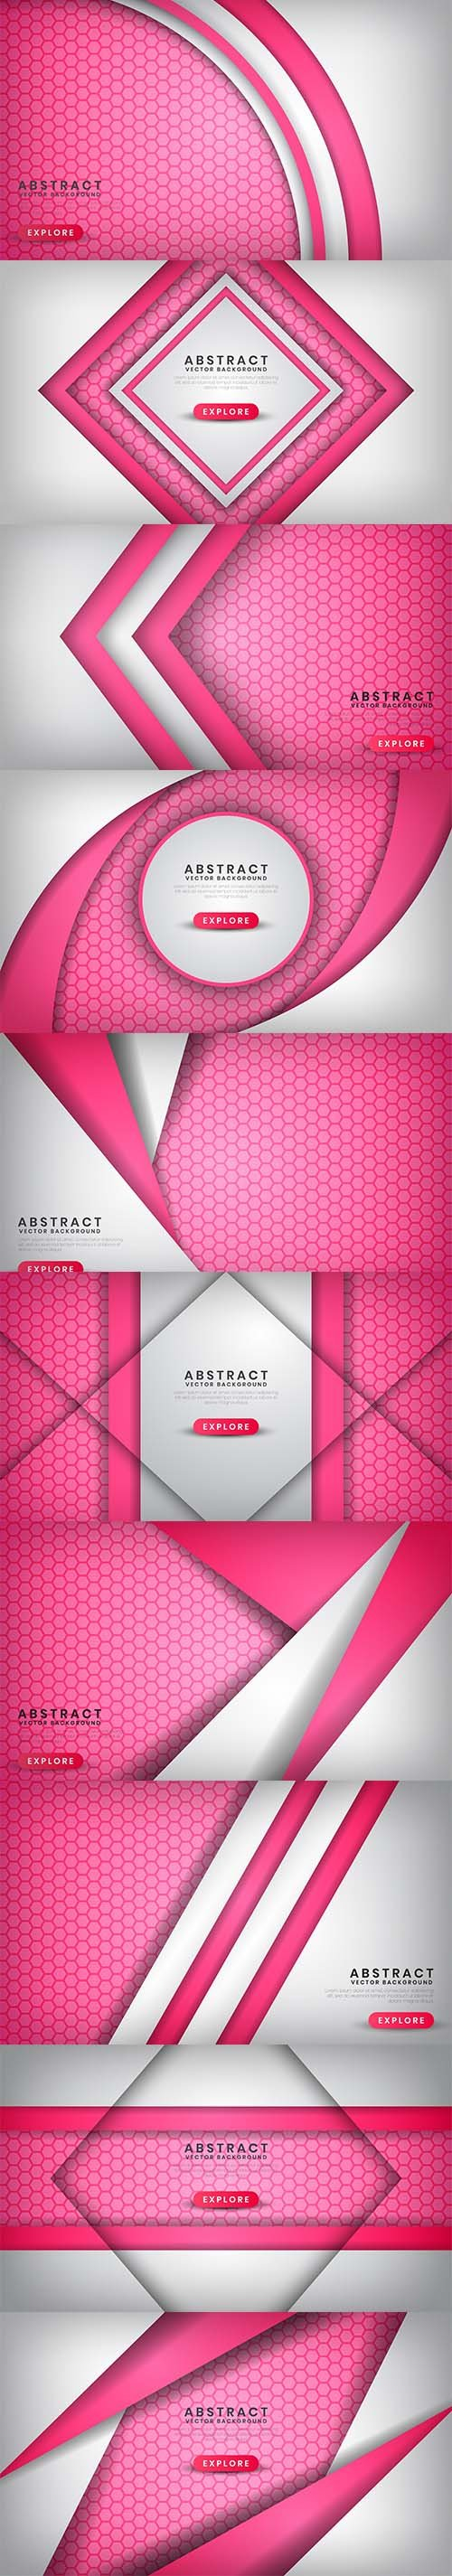 Abstract Luxury White Pink Background with Hexagon Vector Patterns